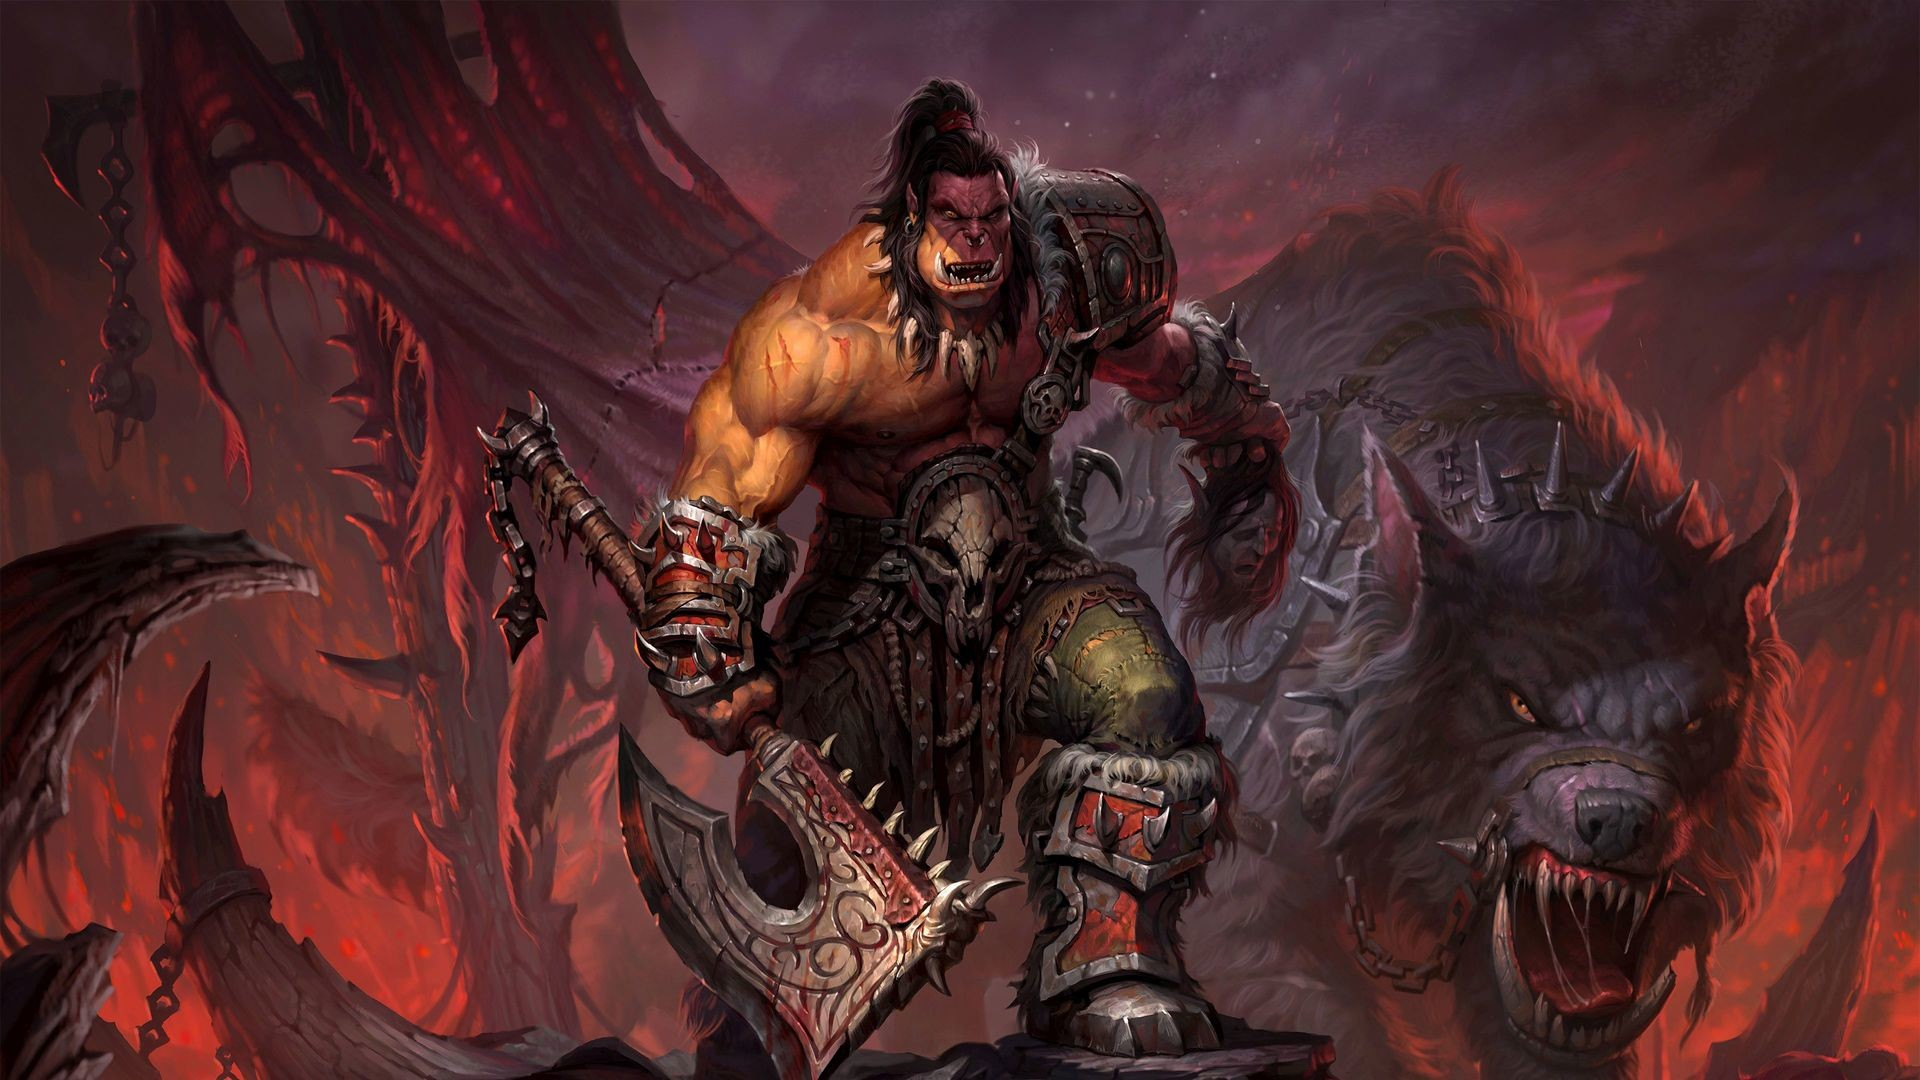 World Of Warcraft Backgrounds 1920x1080: World Of Warcraft Wallpapers HD (86+ Background Pictures